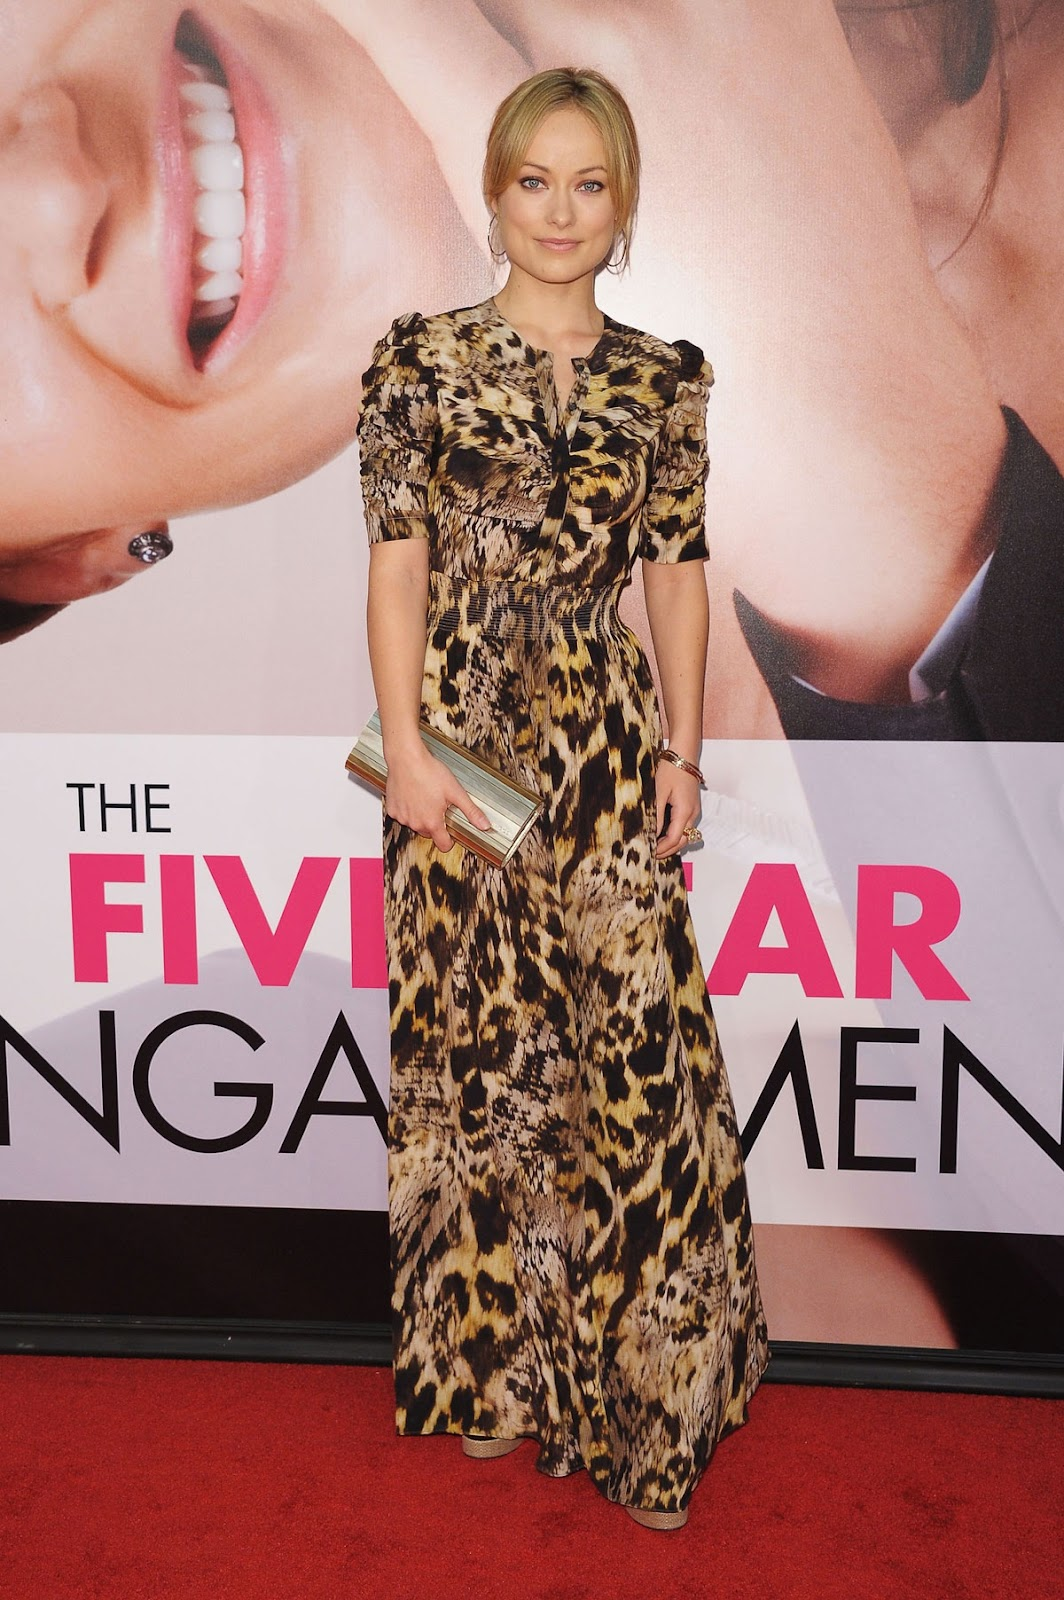 http://2.bp.blogspot.com/-DOYVxmZ-MEY/T5BBzIa1eBI/AAAAAAAABCM/wPI0cT6RmMk/s1600/OLIVIA-WILDE-at-The-Five-Year-Engagement-Premiere-in-NY-01.jpg